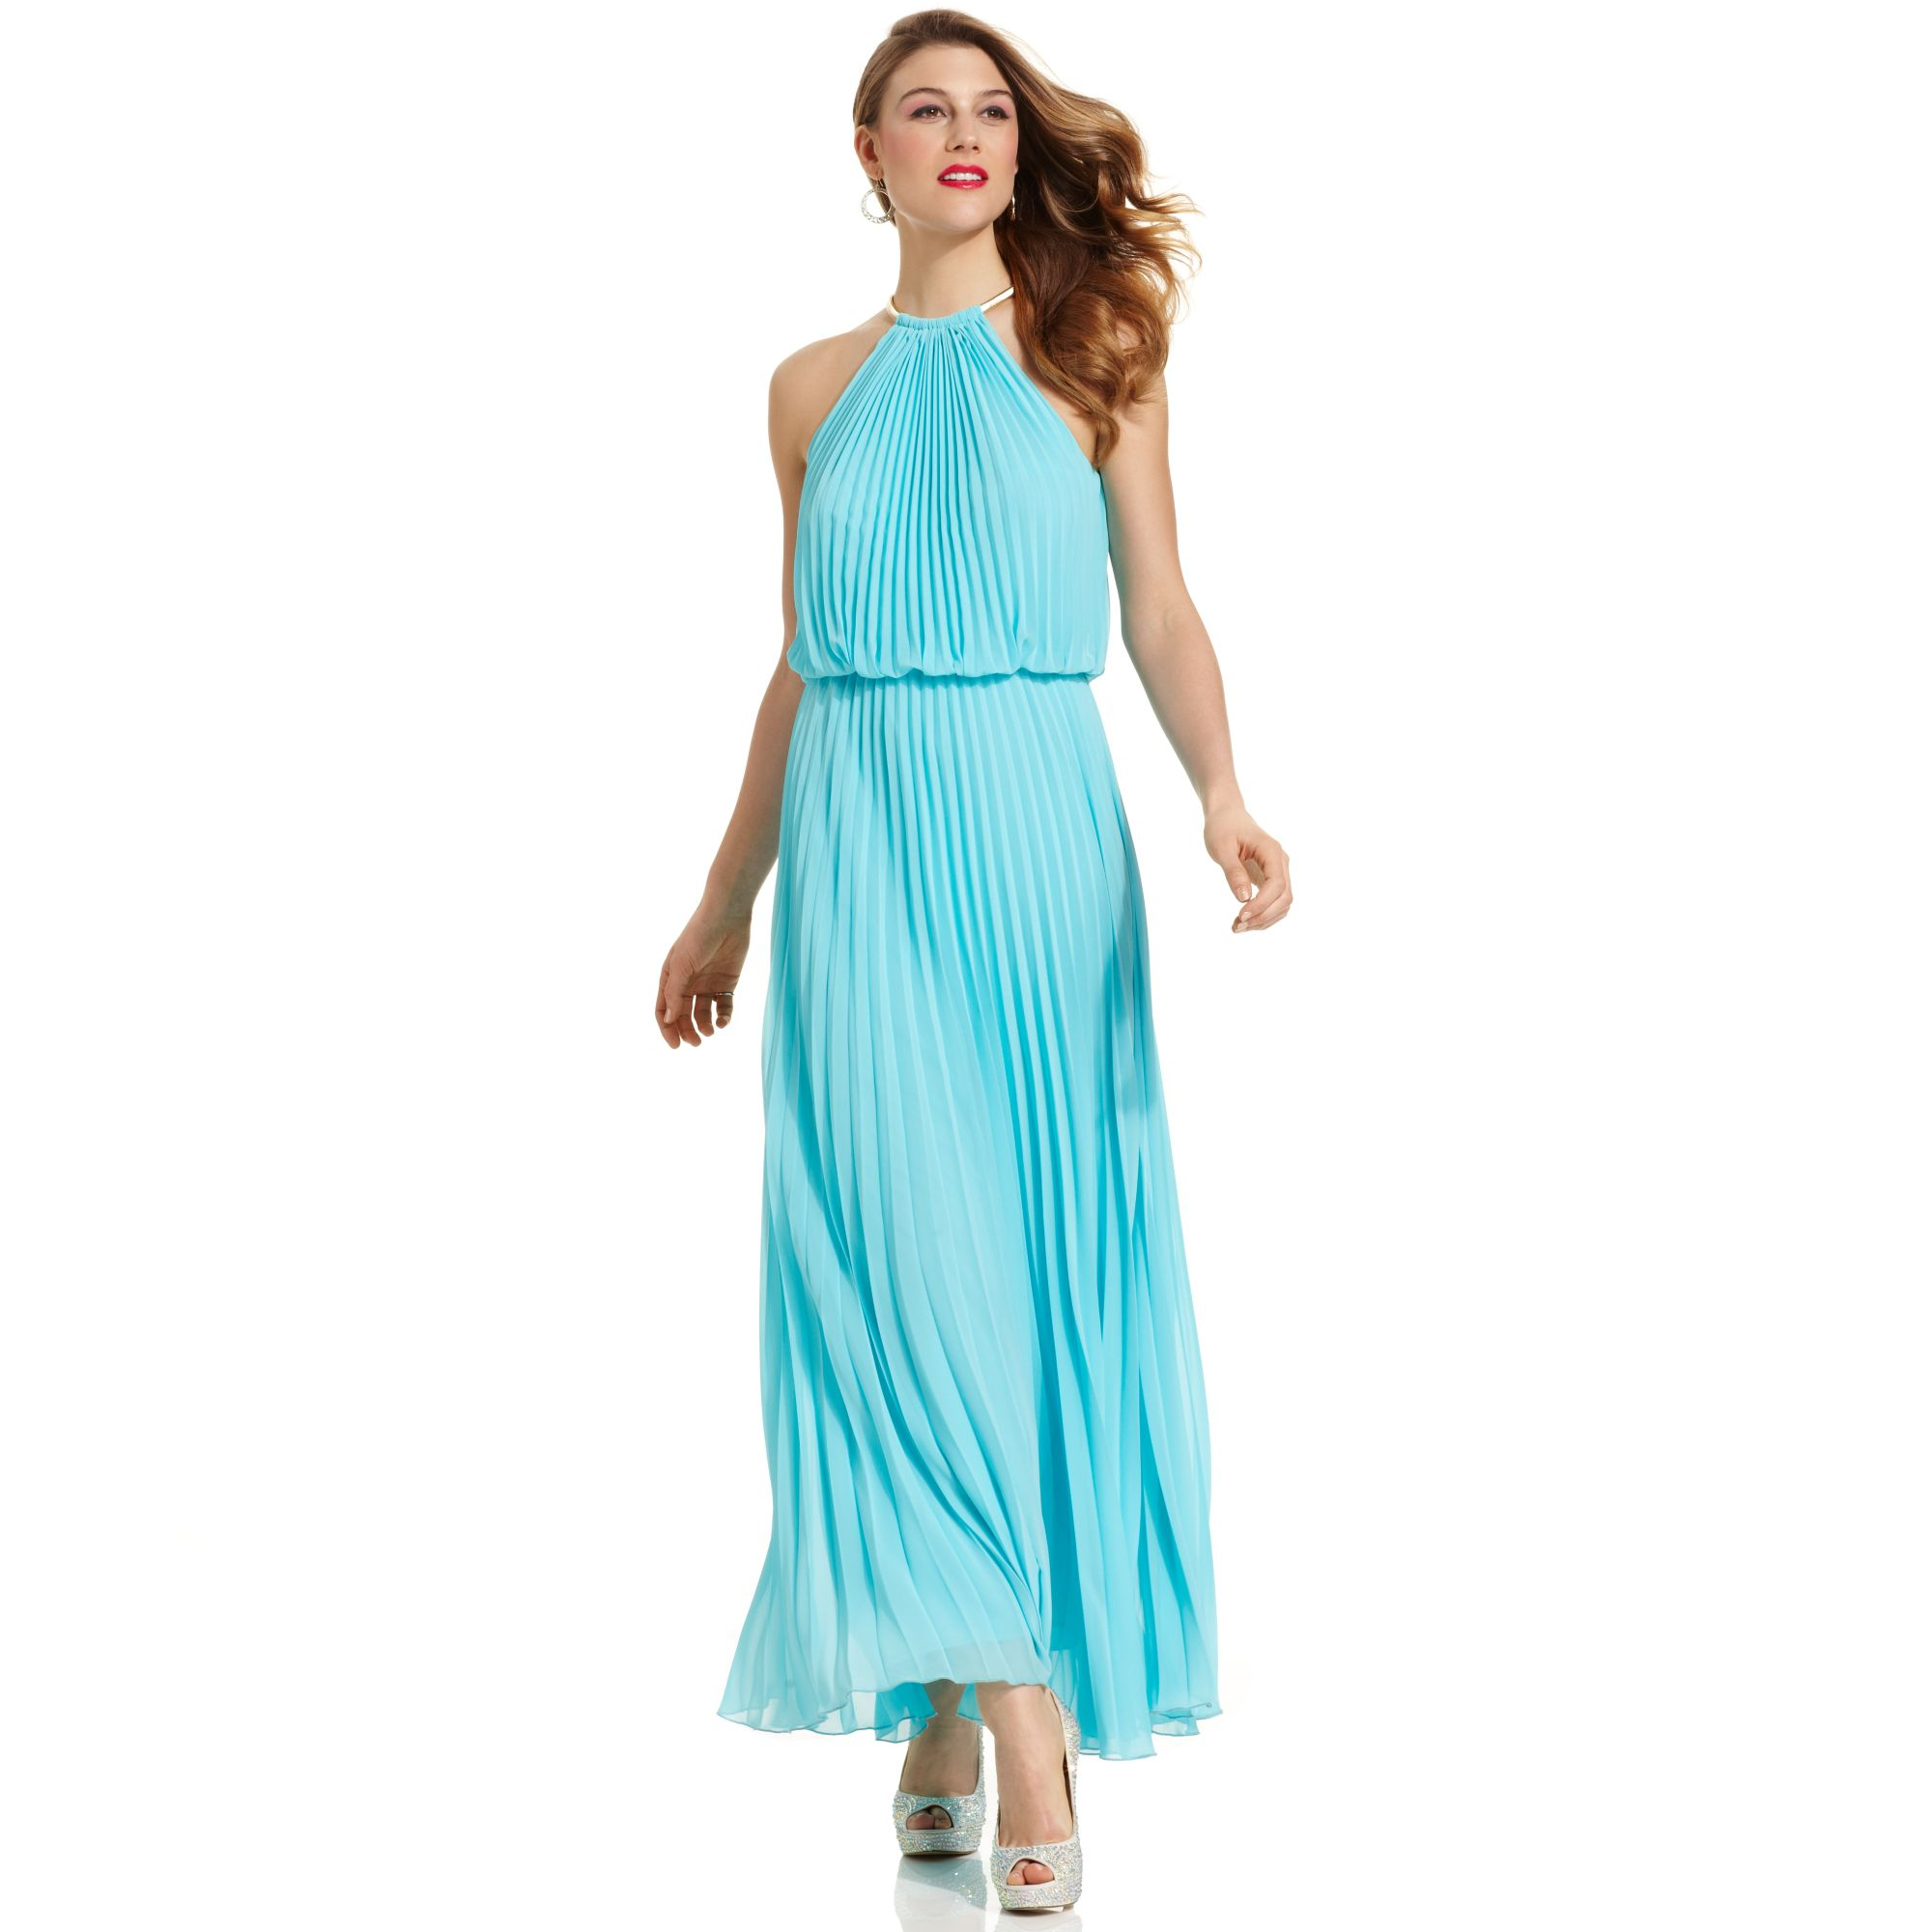 Lyst - Xscape Pleated Halter Blouson Gown in Blue